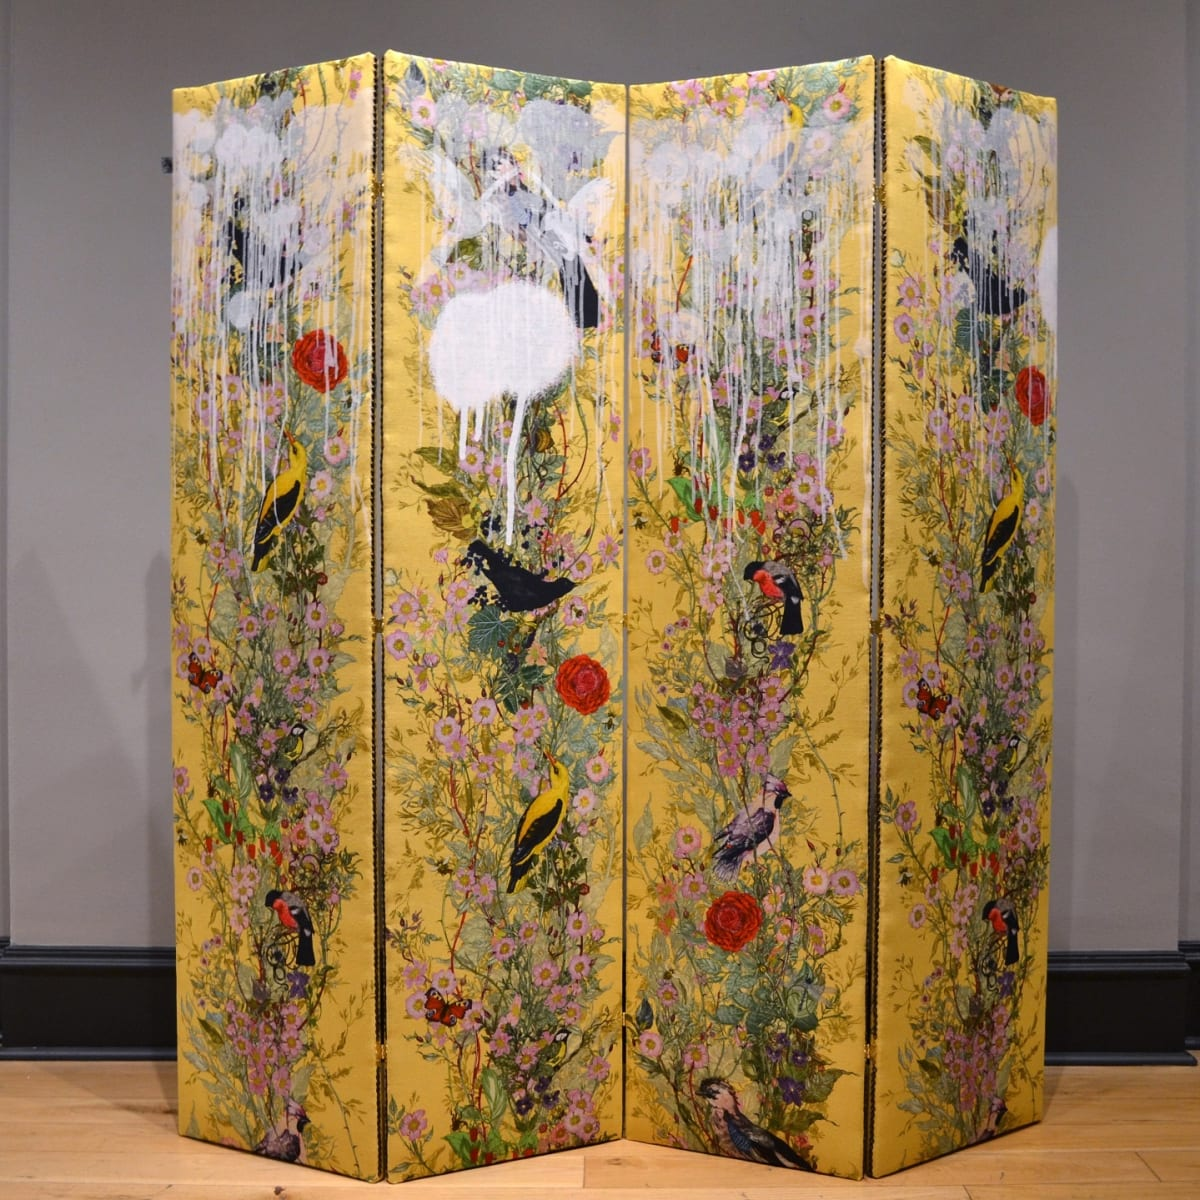 Timorous Beasties White Tagged Fruit Looters, 2019 folding screen upholstered in Fruit Looters fabric with one-off screen print design 172 x 123 cm (3 panels, 41 cm width each)